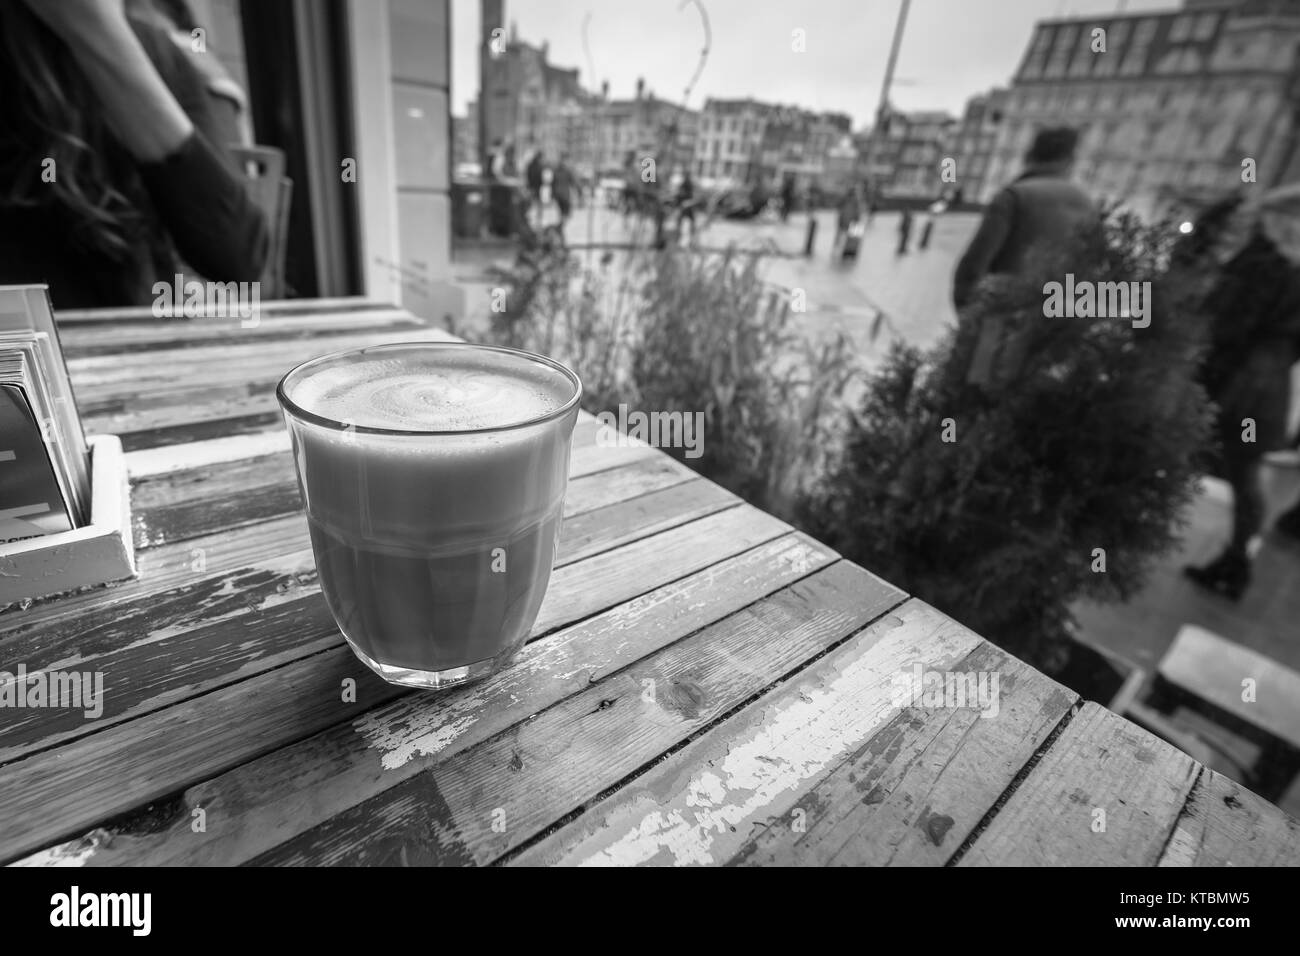 Coffee in a coffee shop window. - Stock Image